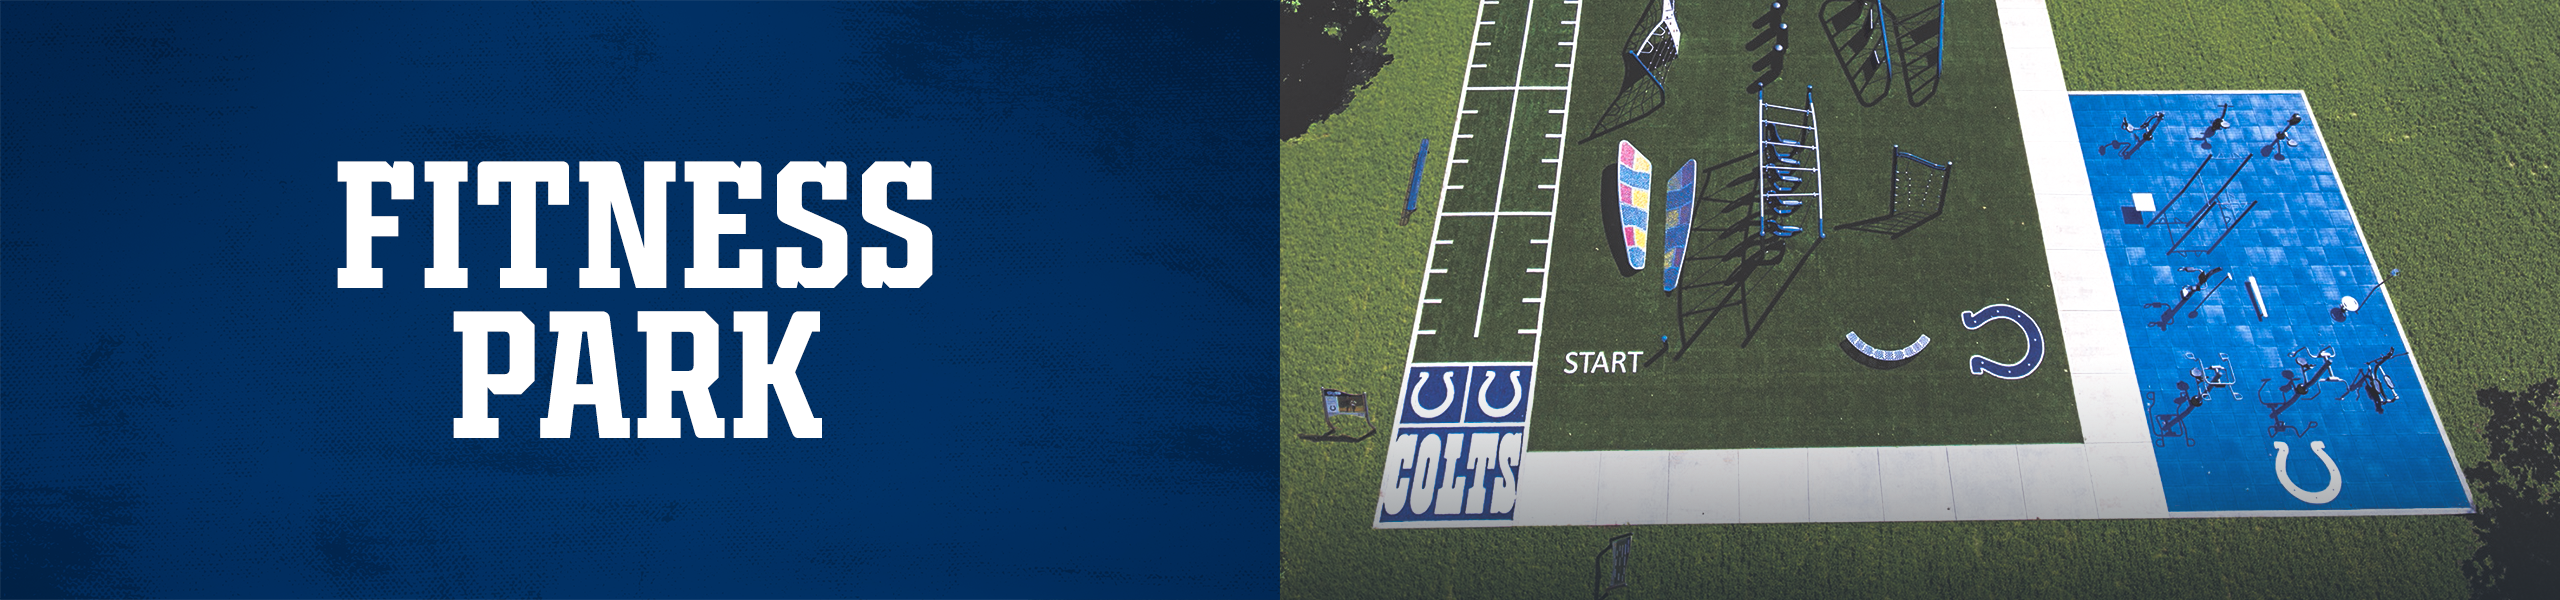 Indianapolis Colts Fitness Park